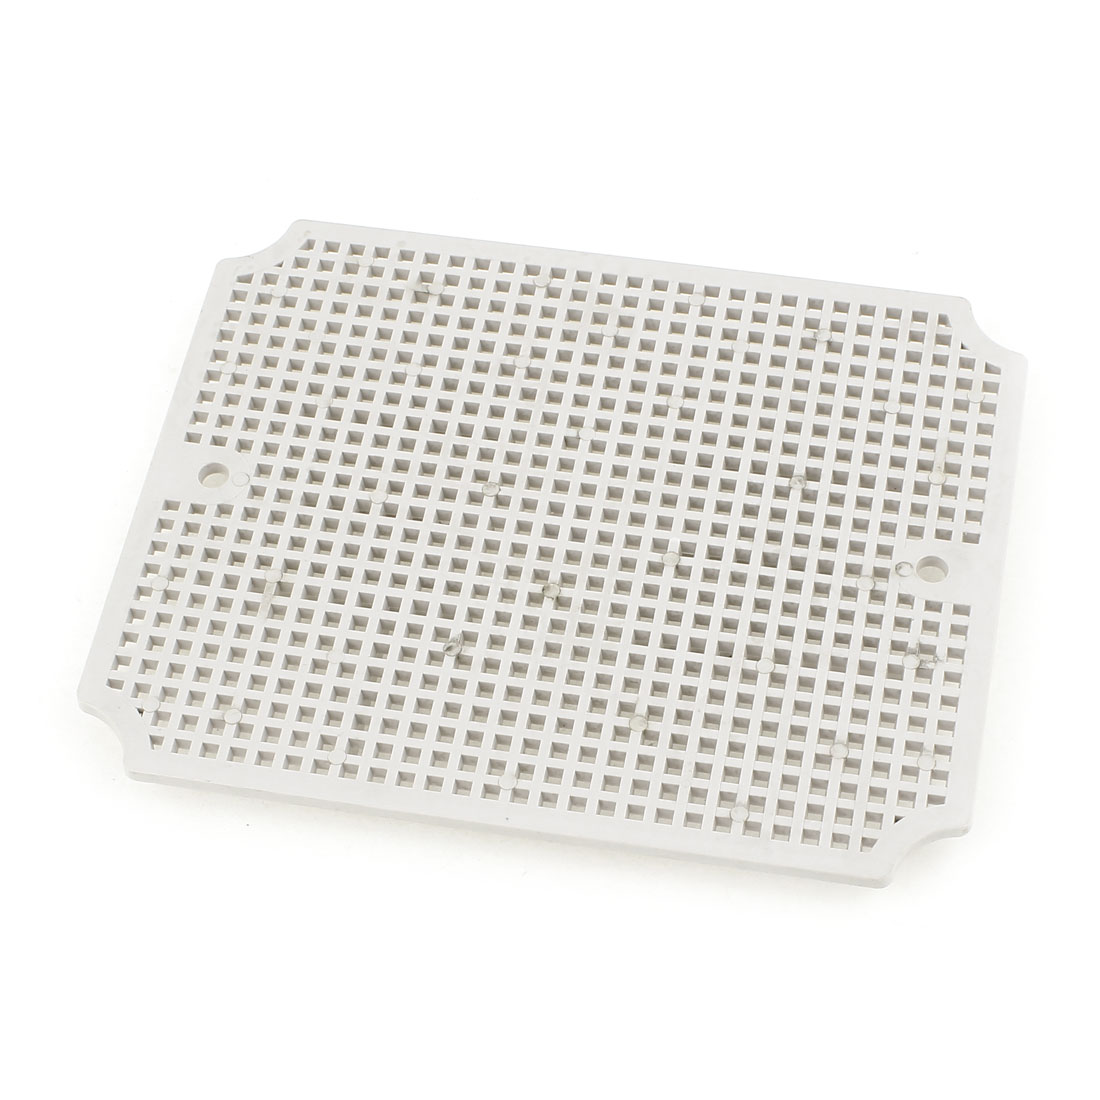 Gray Plastic Mesh Enclosure Mounting Plate for 140 x 170mm Junction Box